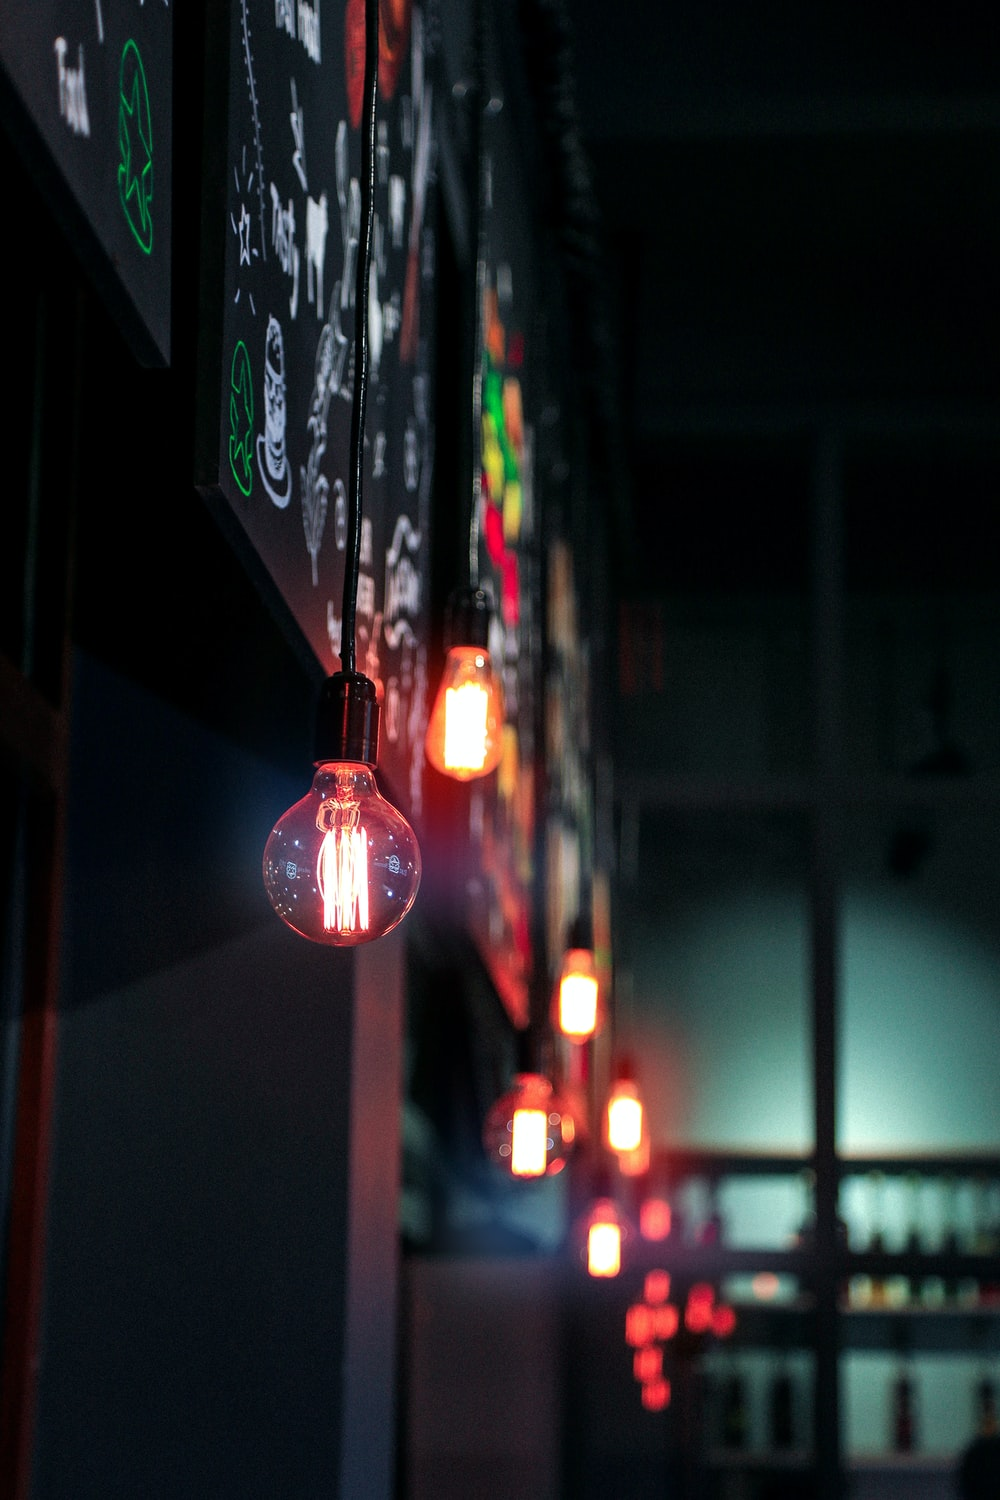 500 Lighting Pictures Hd Download Free Images On Unsplash